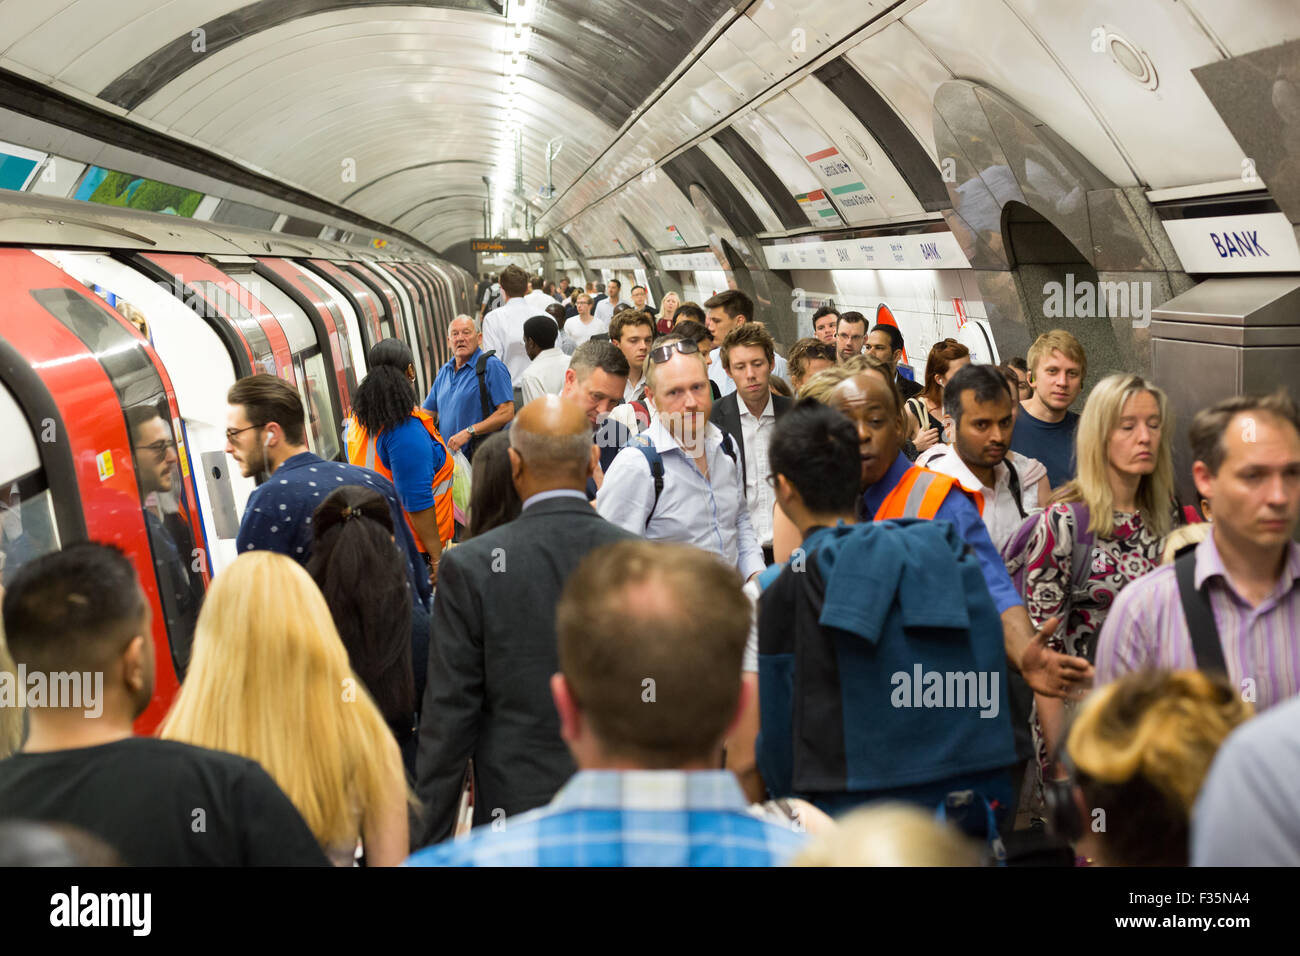 Rush Hour at Bank Station on the London Underground - Stock Image